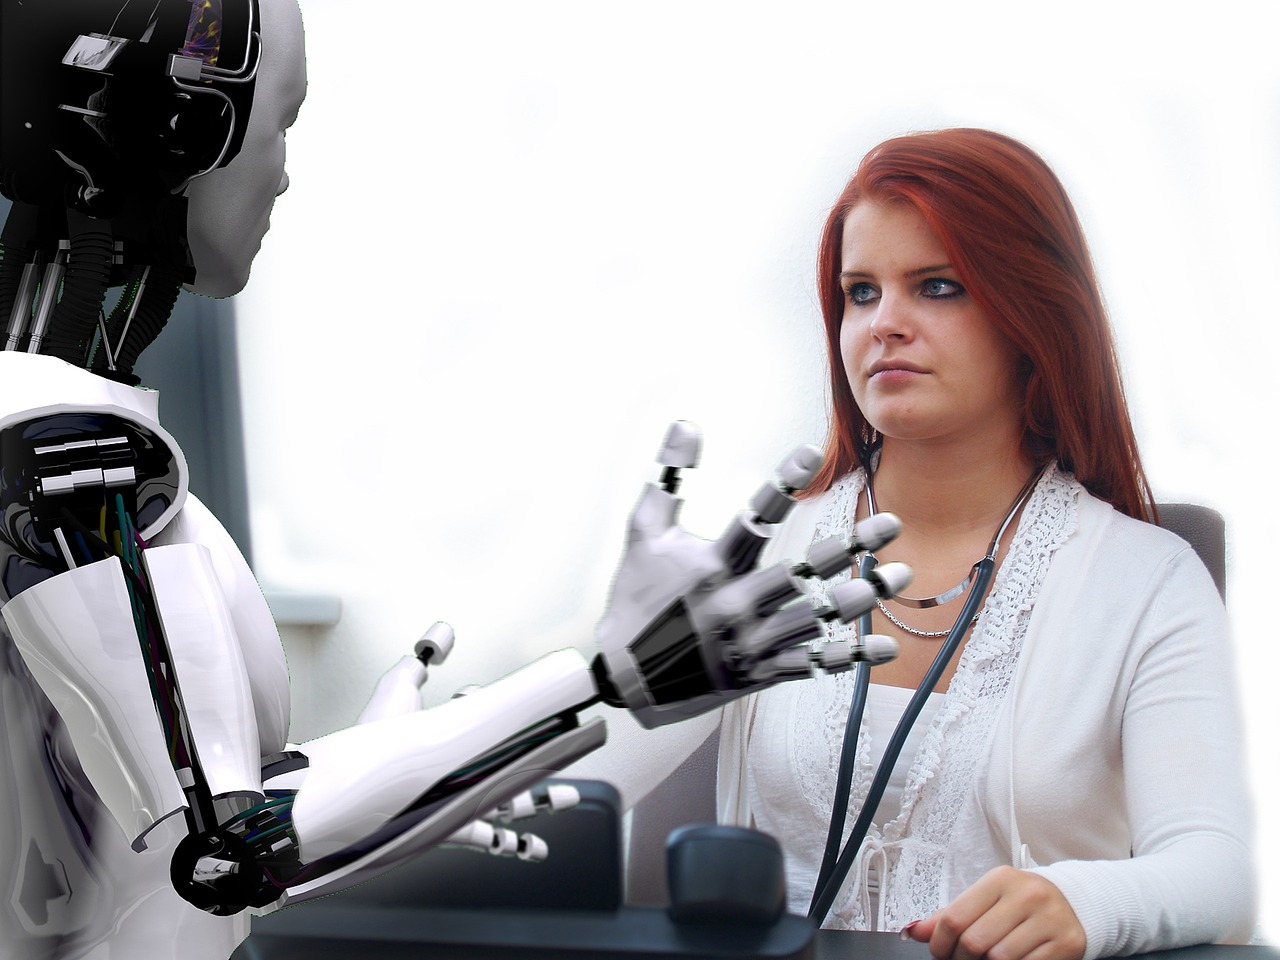 Could a robot replace your doctor in the near future?